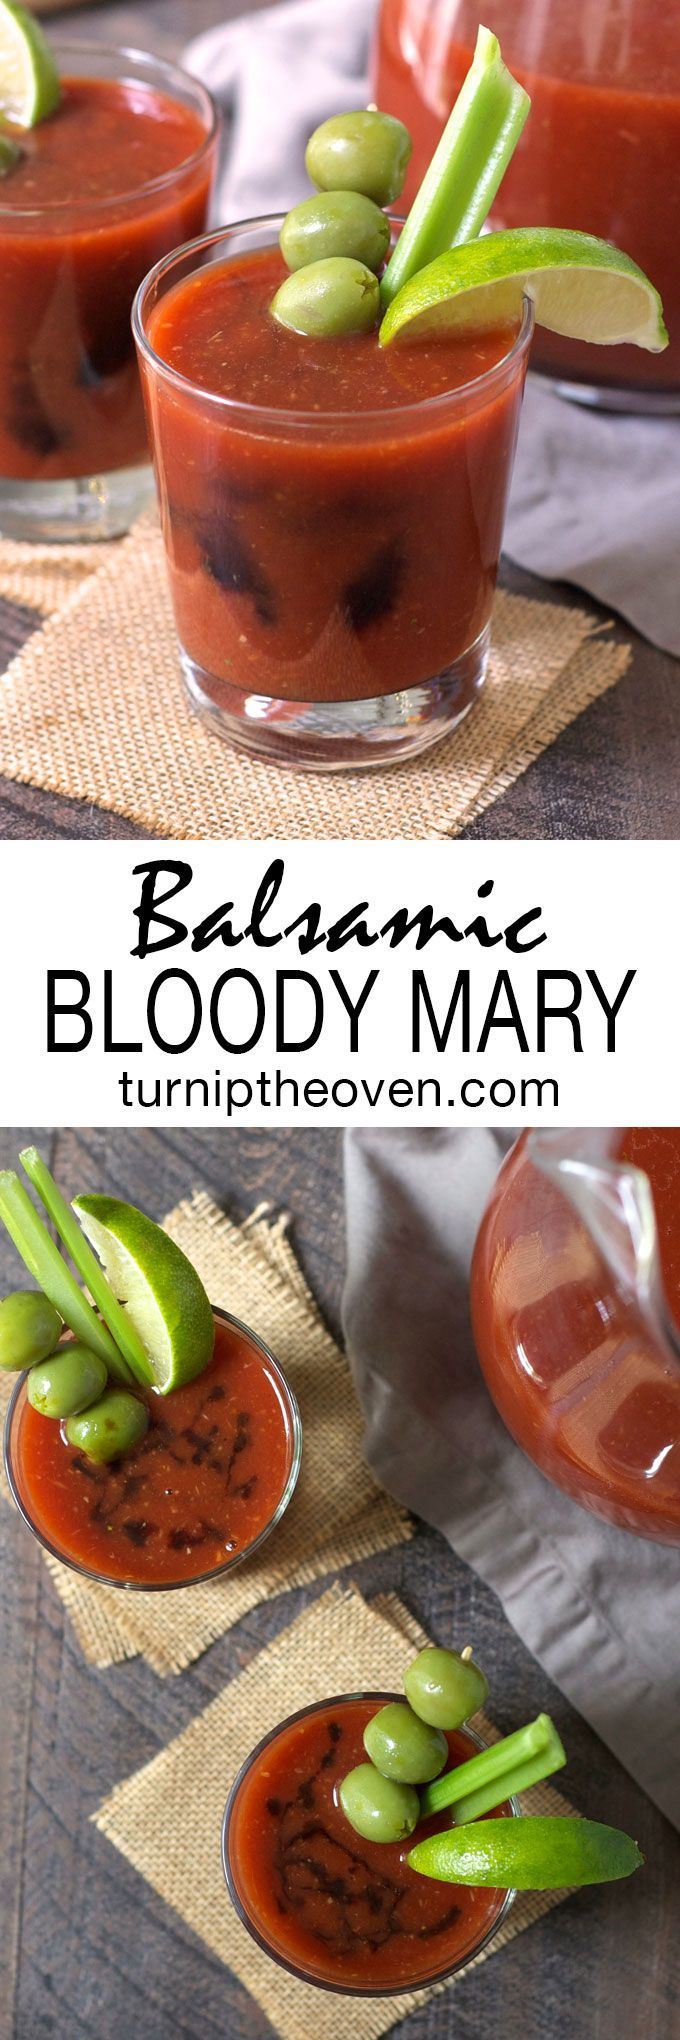 This balsamic bloody mary puts a new spin on the classic brunch cocktail. A little spicy, a little sweet, and totally addictive!